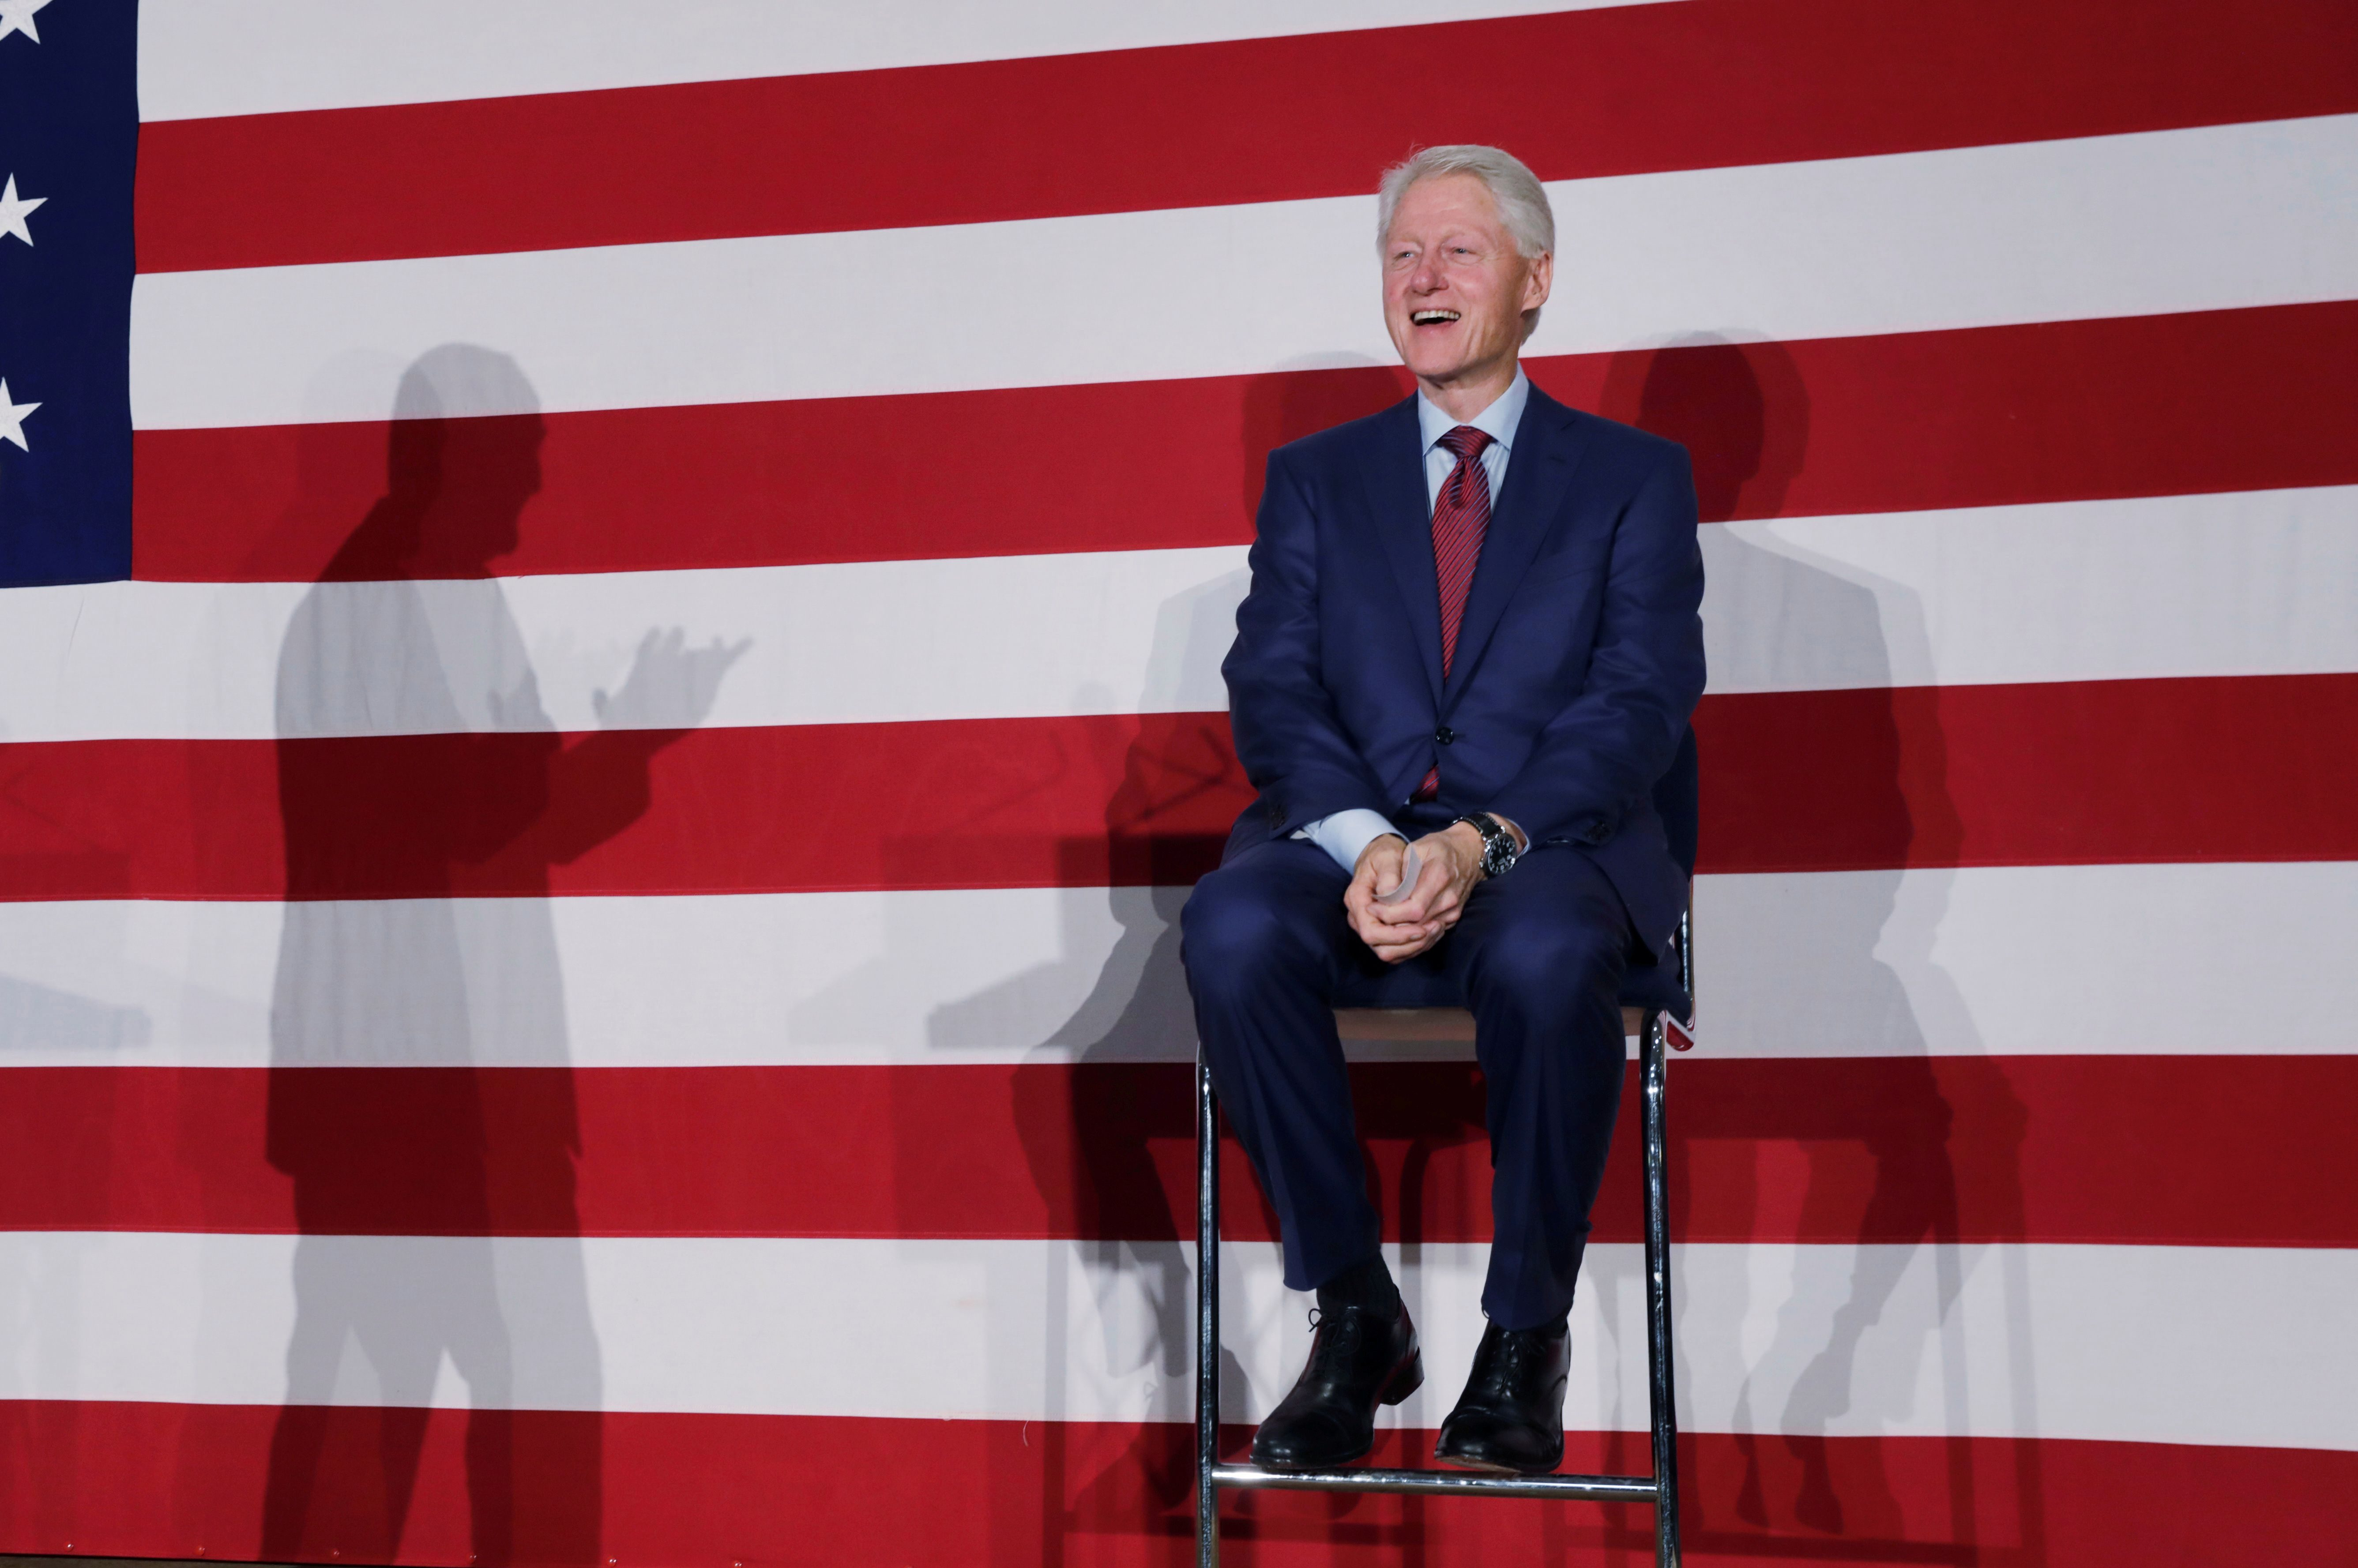 Former U.S. President Bill Clinton takes part in a campaign event for Philip Murphy, the Democratic Party nominee for Governor of New Jersey in Paramus, New Jersey, on October 24, 2017.